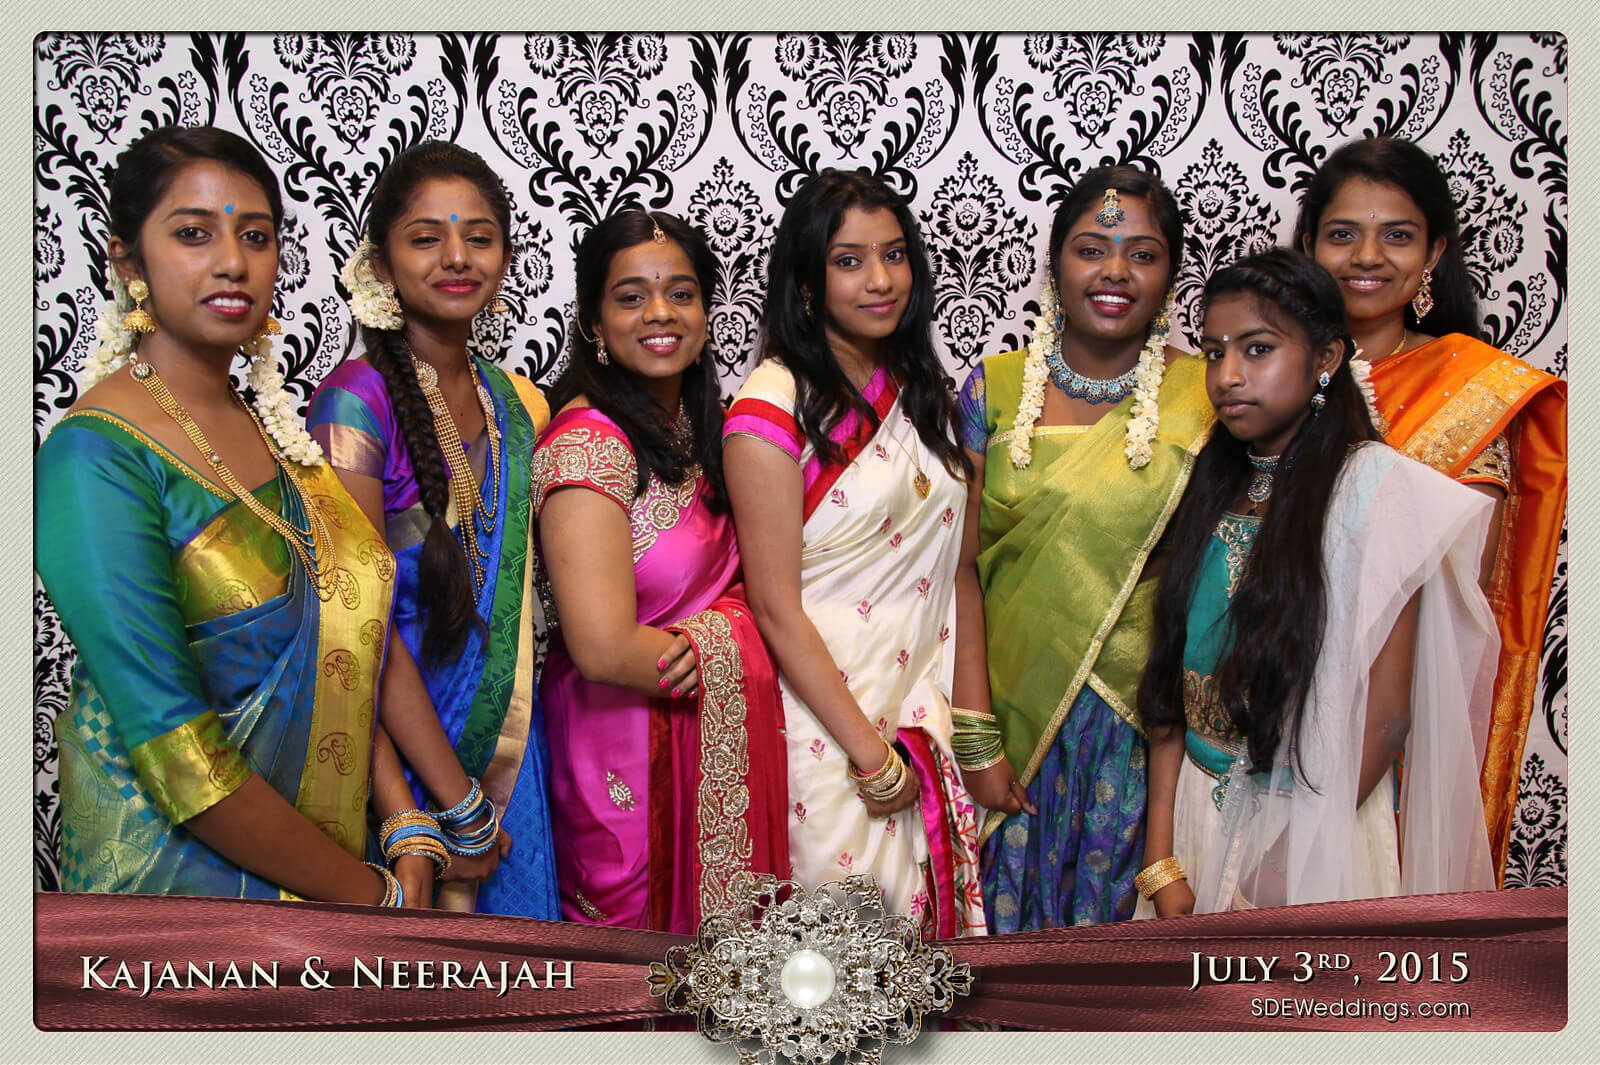 Toronto Scarborough Convention Centre Hindu Wedding Photo Booth Rental 1